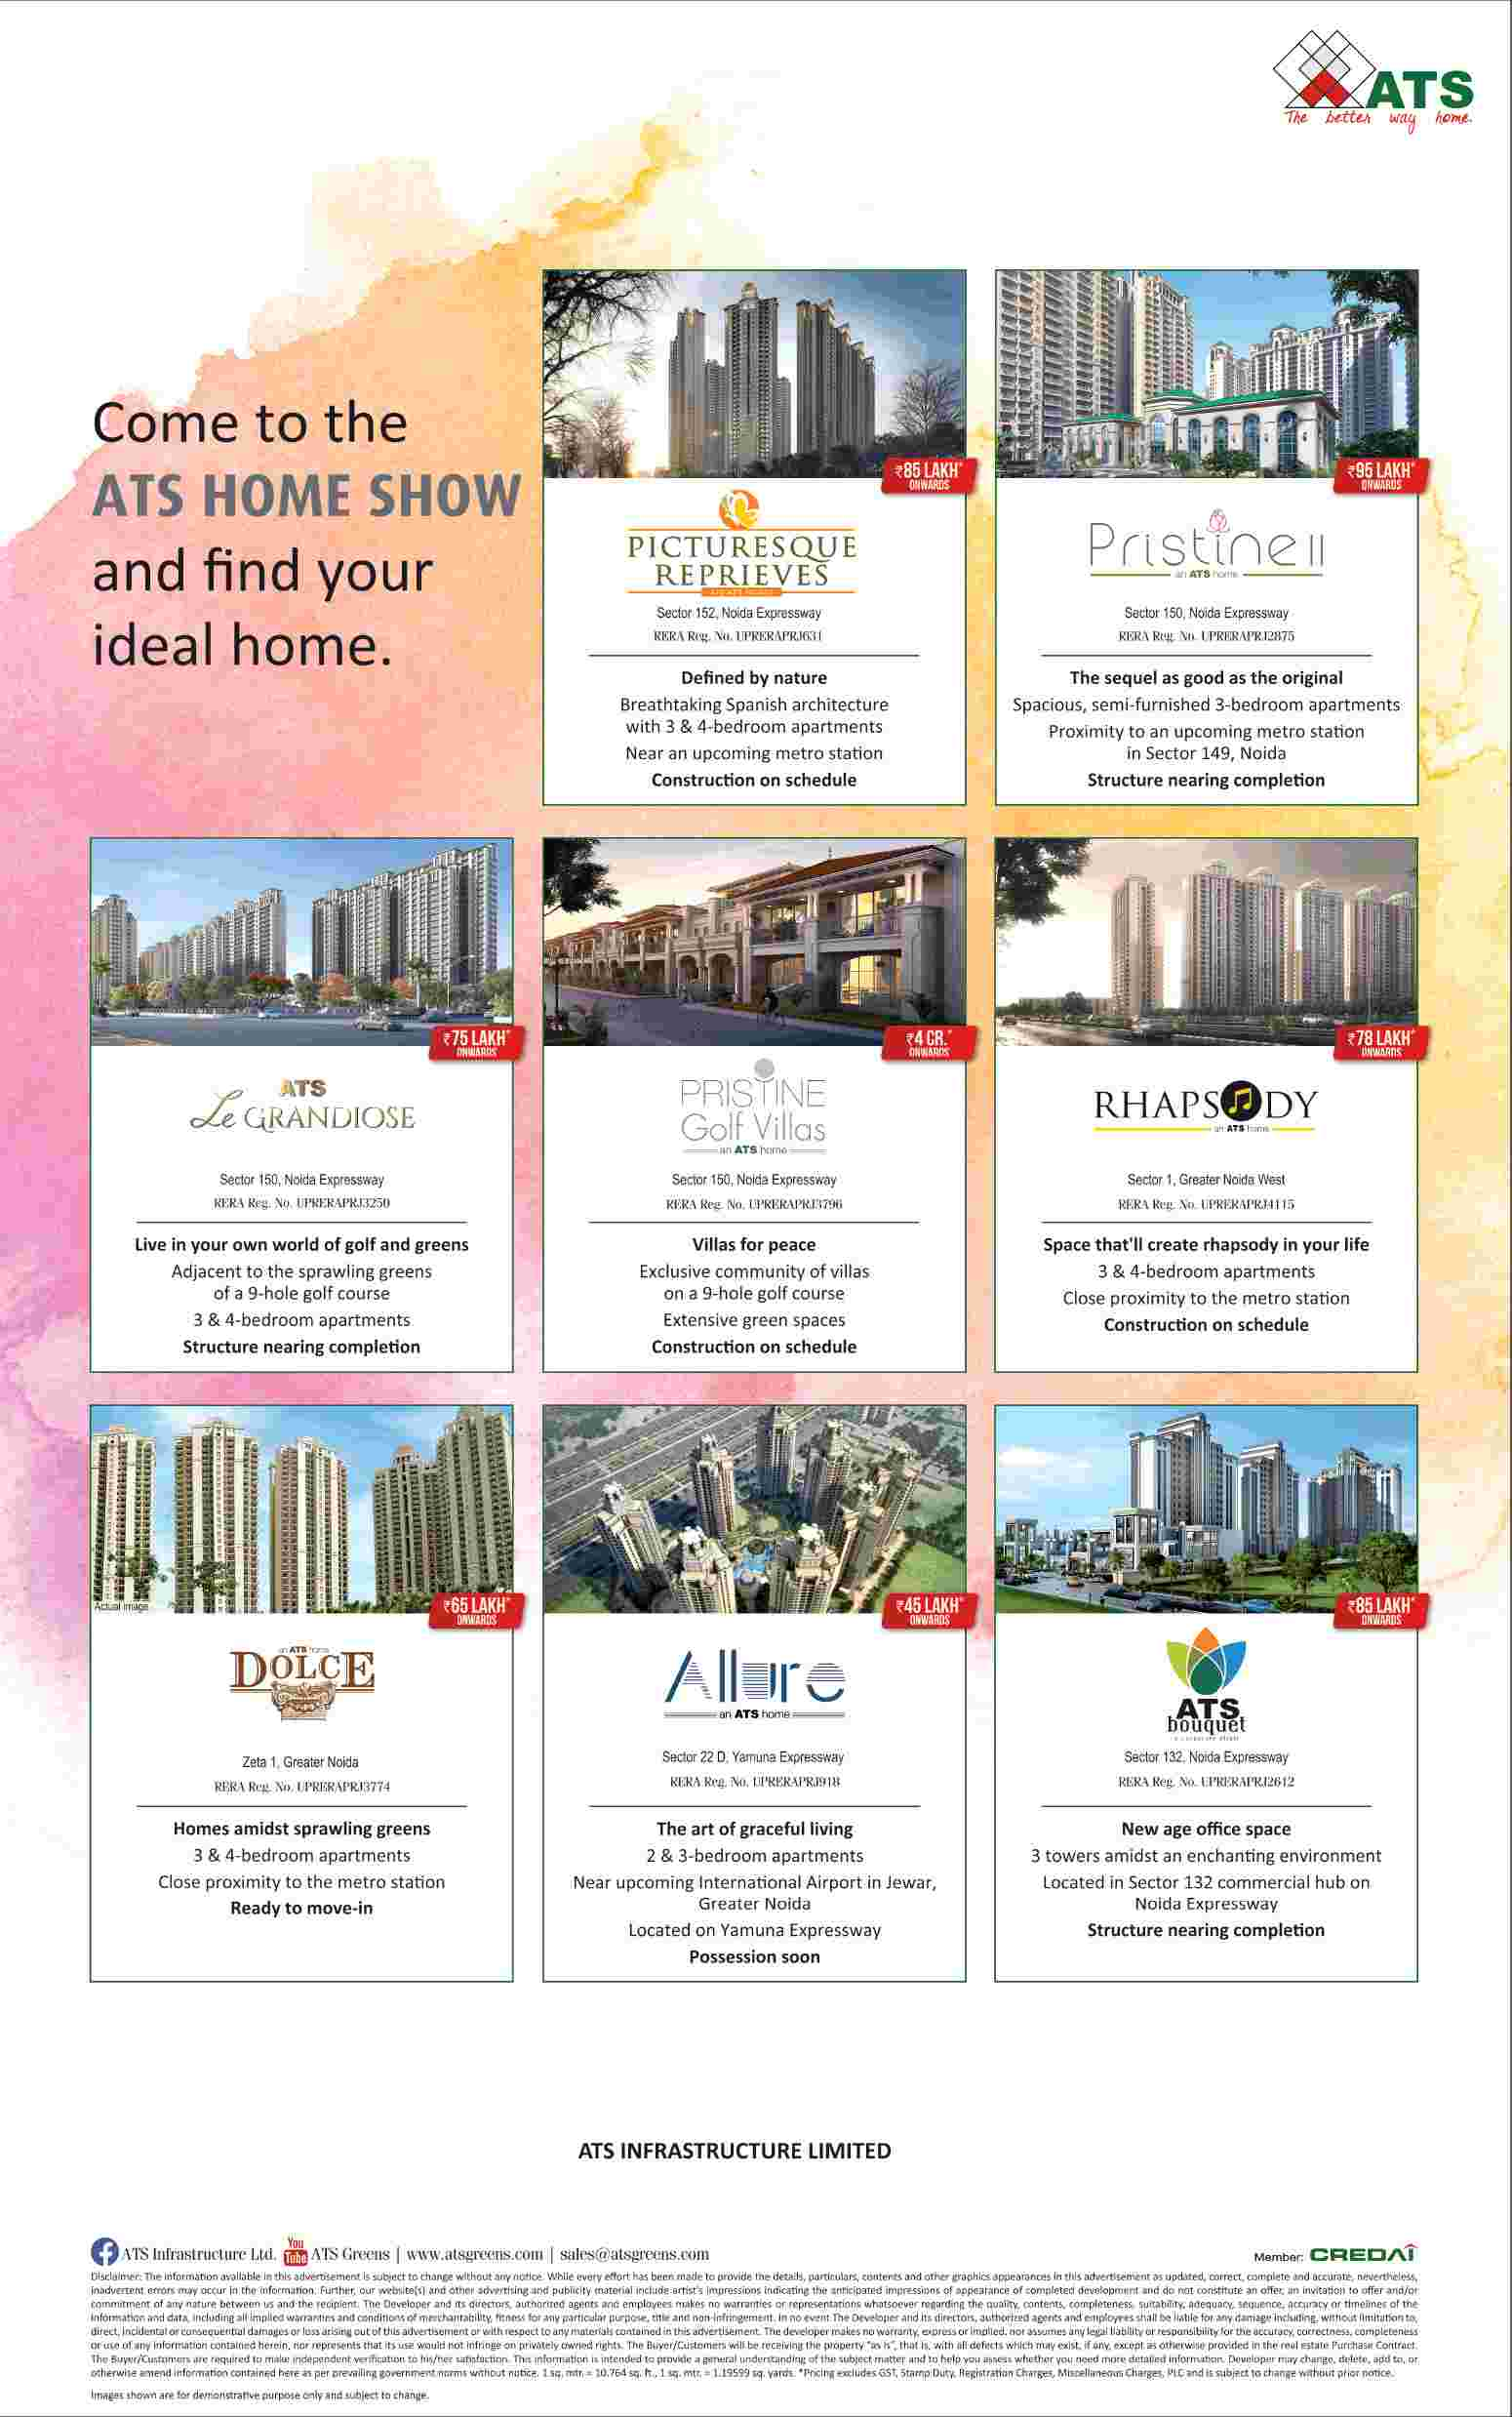 Come to the ATS Home Show and find your ideal home - Zricks.com